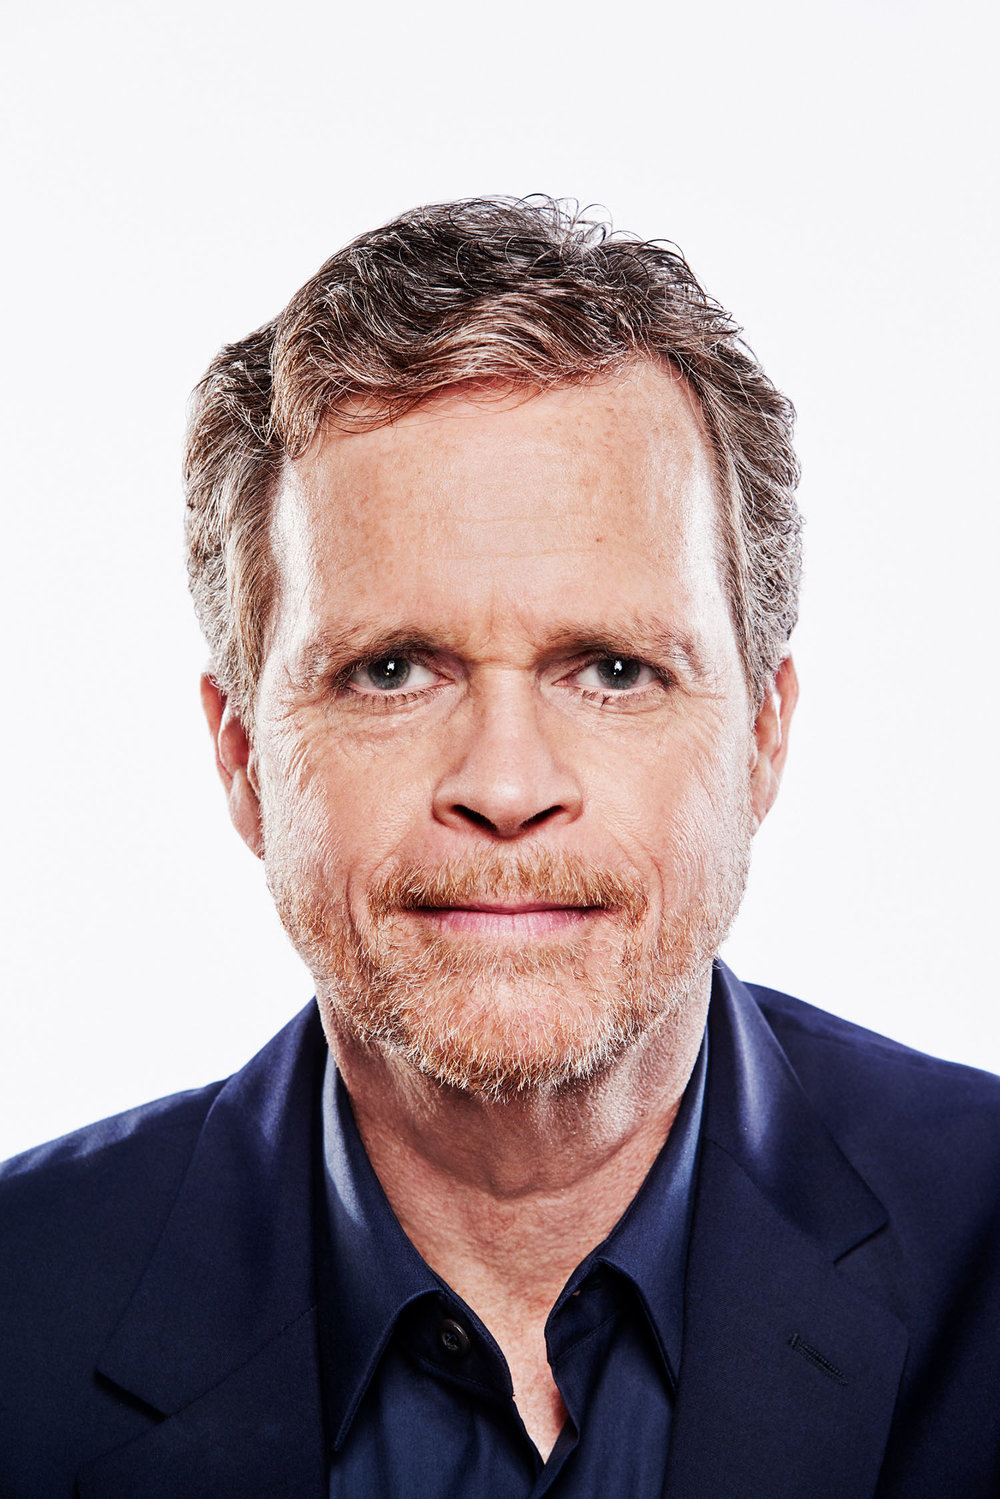 Mark Parker, CEO of Nike